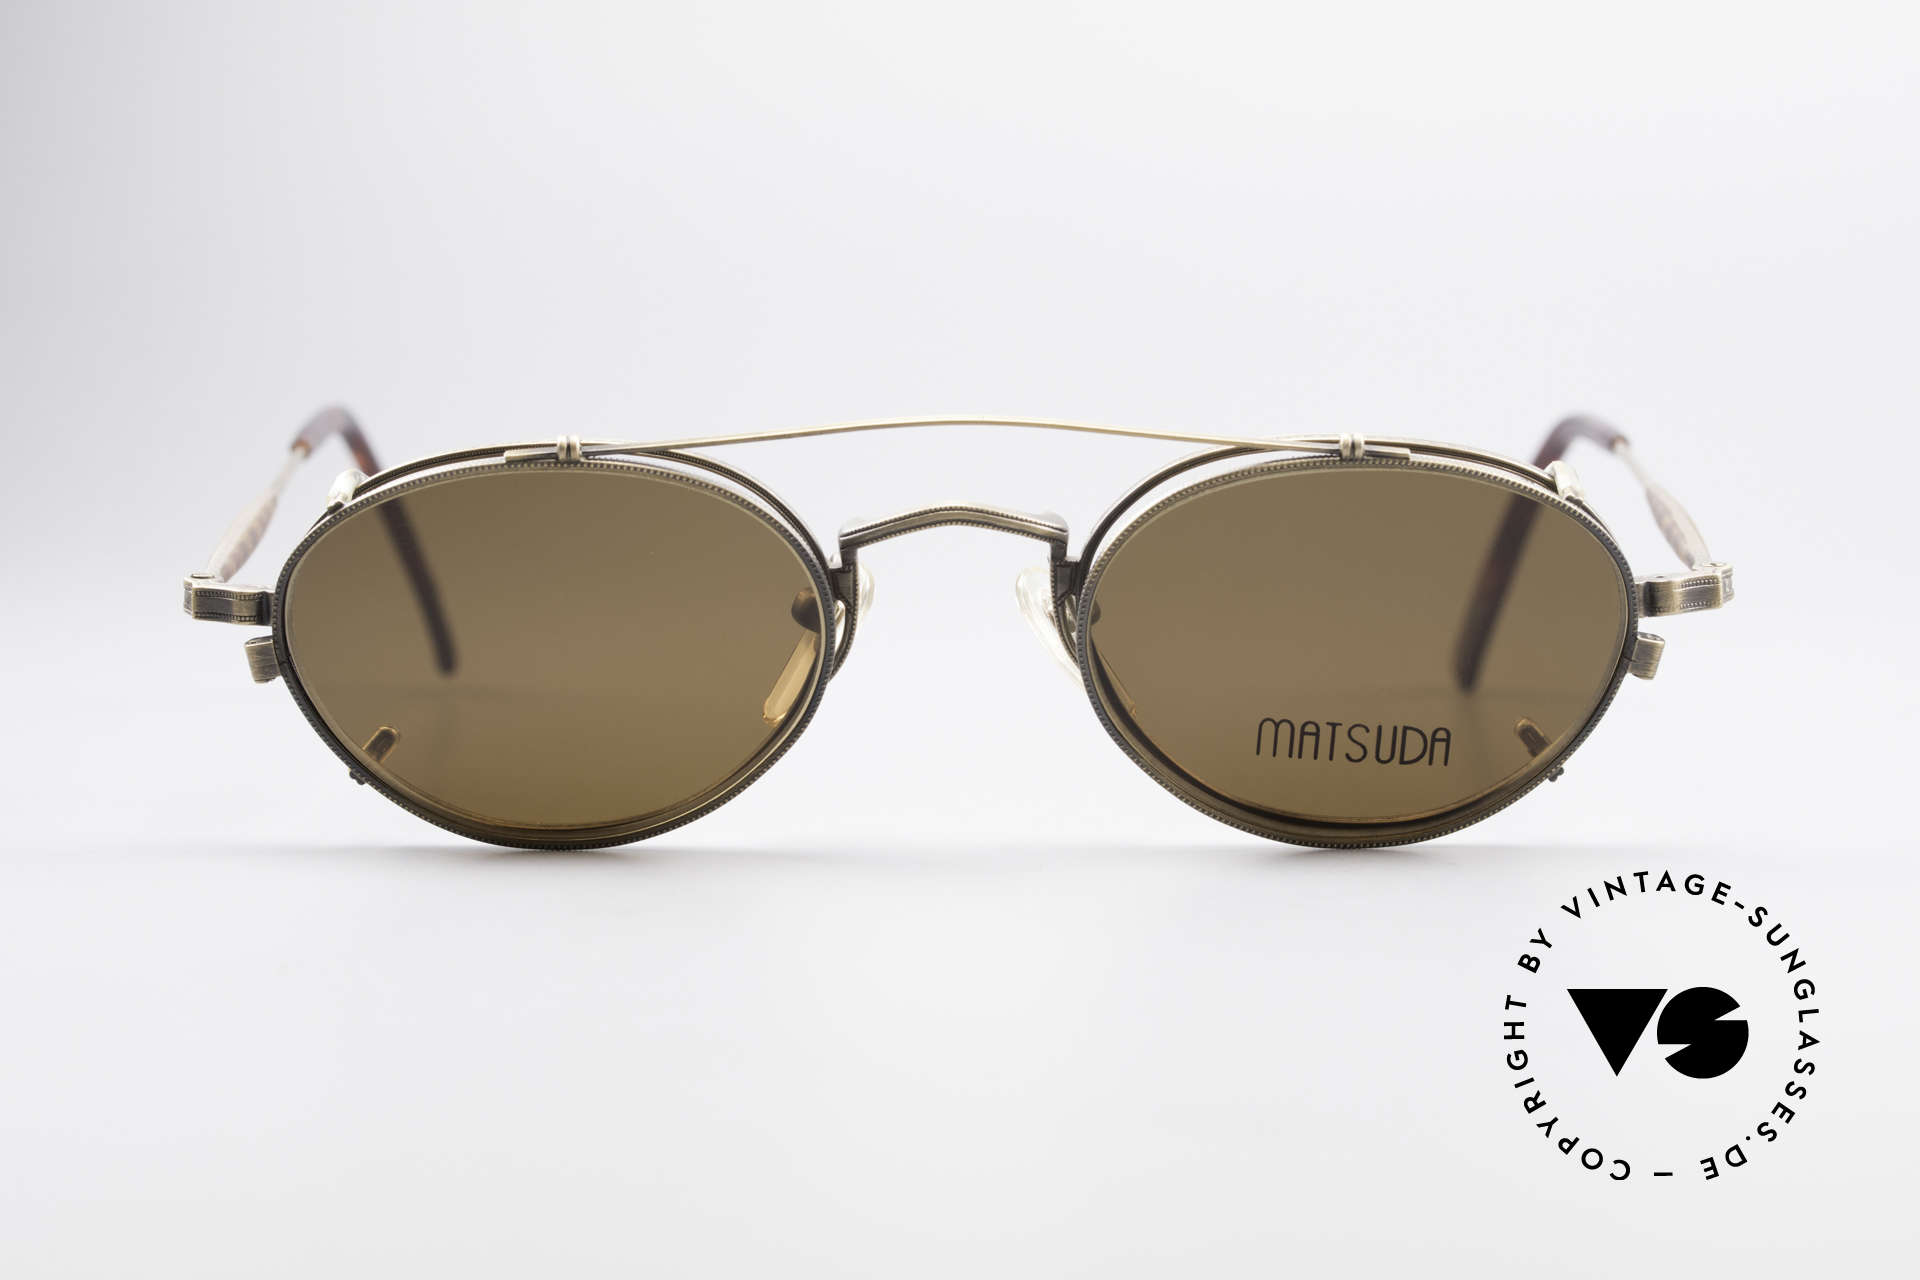 Matsuda 10102 Vintage Steampunk Shades, 'Steampunk sunglasses' by the jap. 'design manufactory', Made for Men